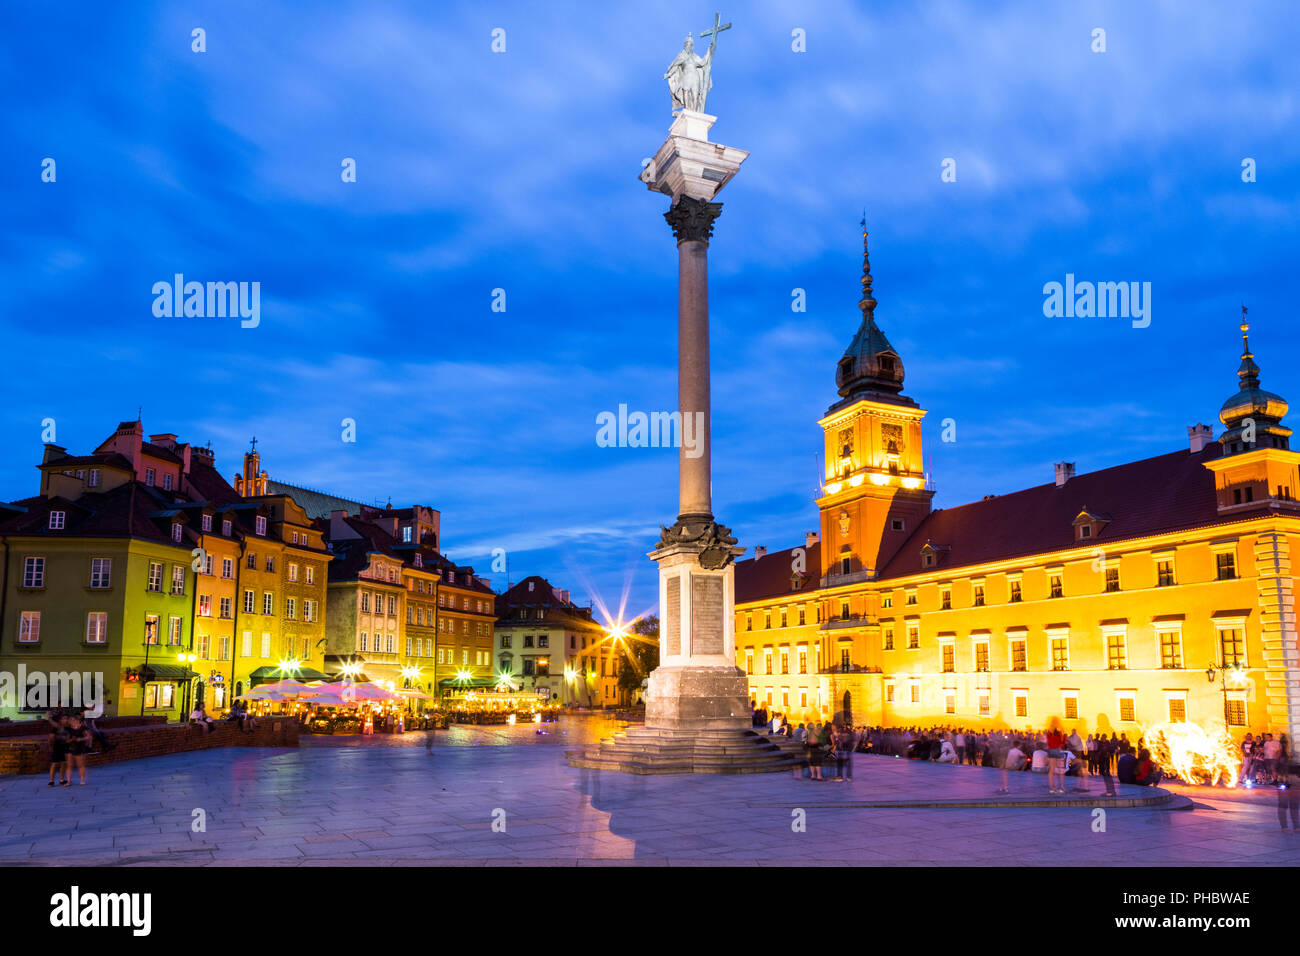 Royal Castle and Sigismund's Column in Plac Zamkowy (Castle Square) at night, Old Town, UNESCO World Heritage Site, Warsaw, Poland, Europe - Stock Image